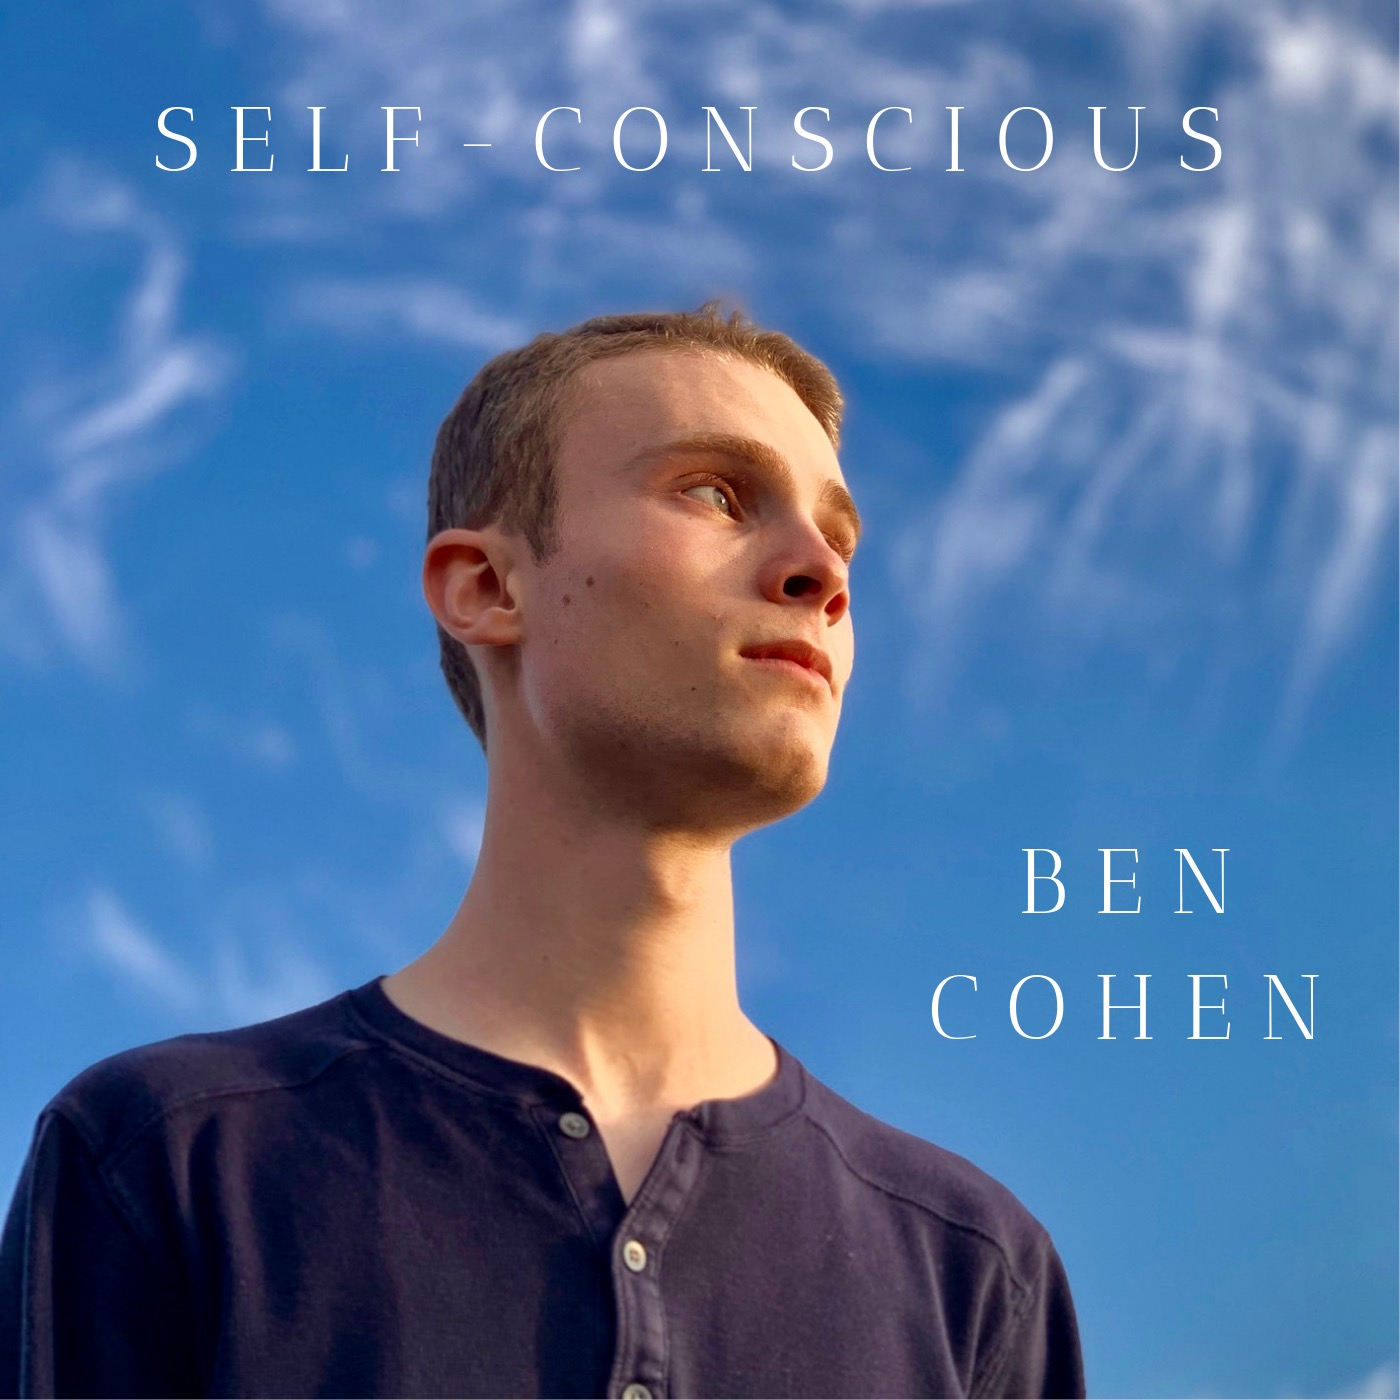 BEn Cohen – Self-conscious (2018) - Engineered, Mixed & Mastered